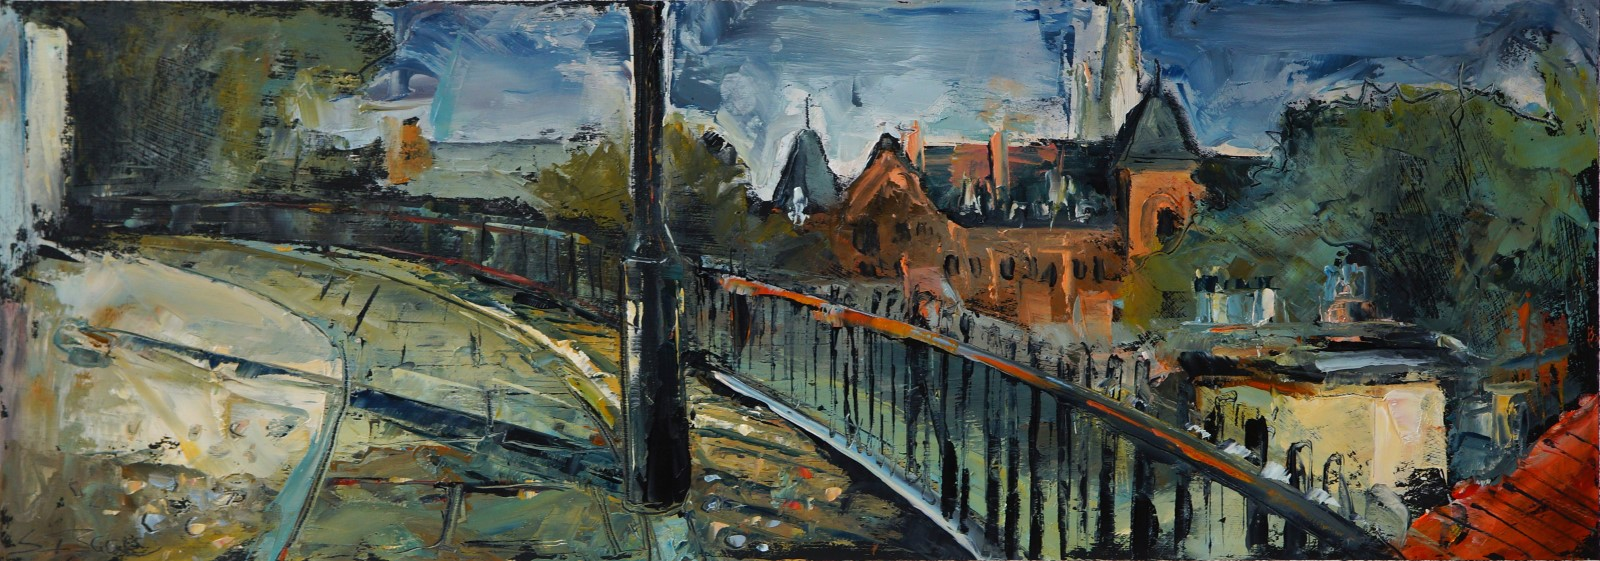 Susan Isaac, 'Looking Toward 'The Royal'', Norwich Castle, Oil, 35x65cm, <a href='http://www.paintout.org/artists/susan-isaac#buy' target='_blank'>FOR SALE</a>, £600